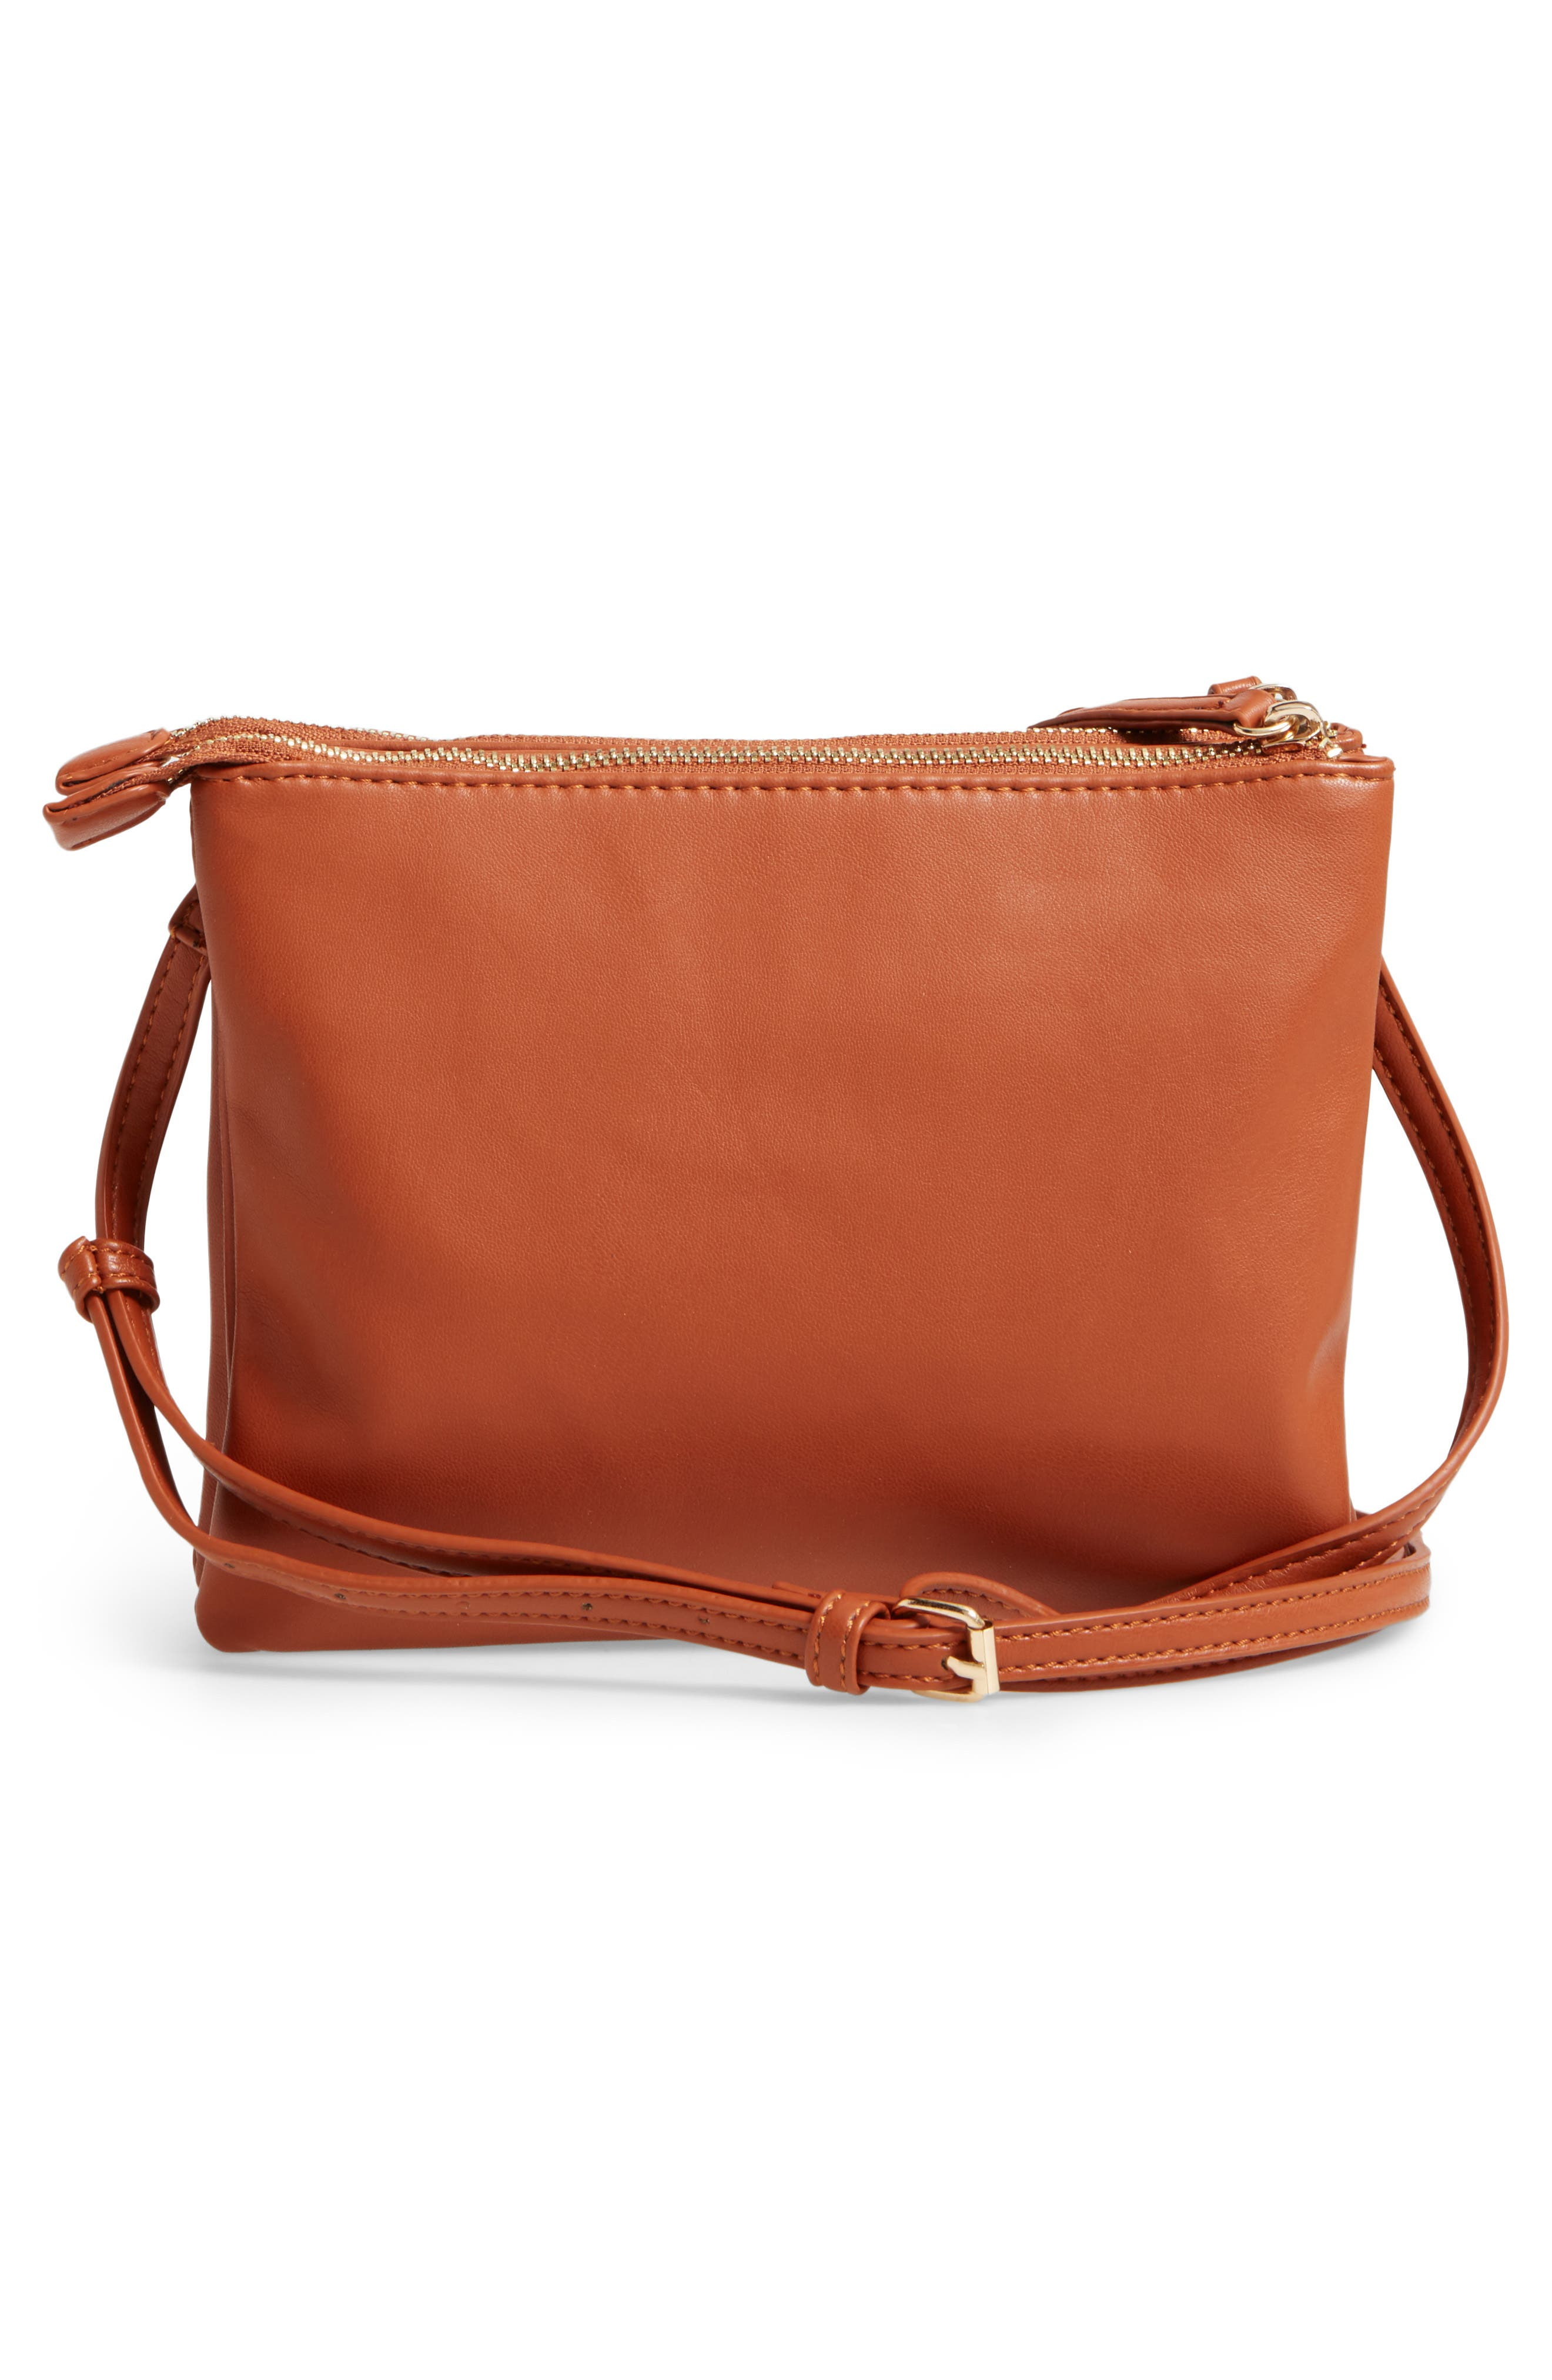 Madden Faux Leather Pouch Crossbody Bag,                             Alternate thumbnail 8, color,